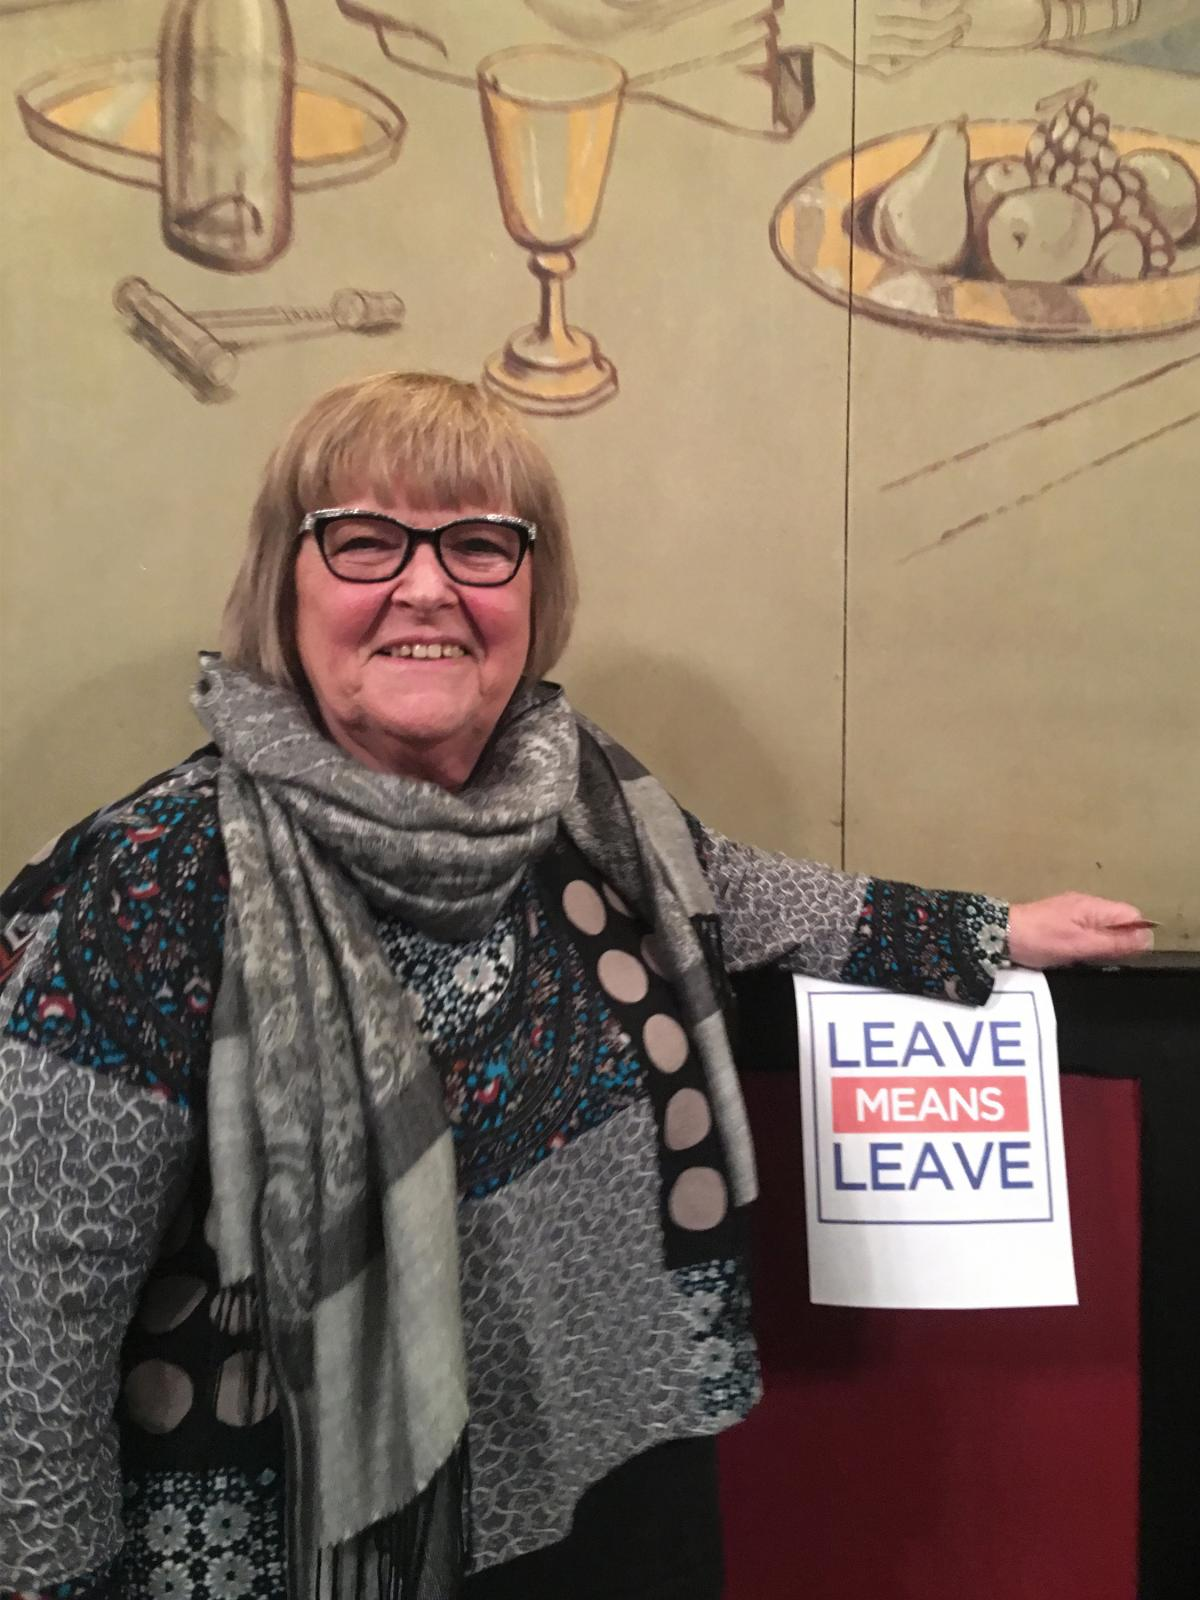 """At the Leavers of Lincolnshire meeting last week, """"We didn't know anybody ... and we started to talk and we all felt the same,"""" says Peggy Reading. """"That was absolutely great. We can breathe."""""""